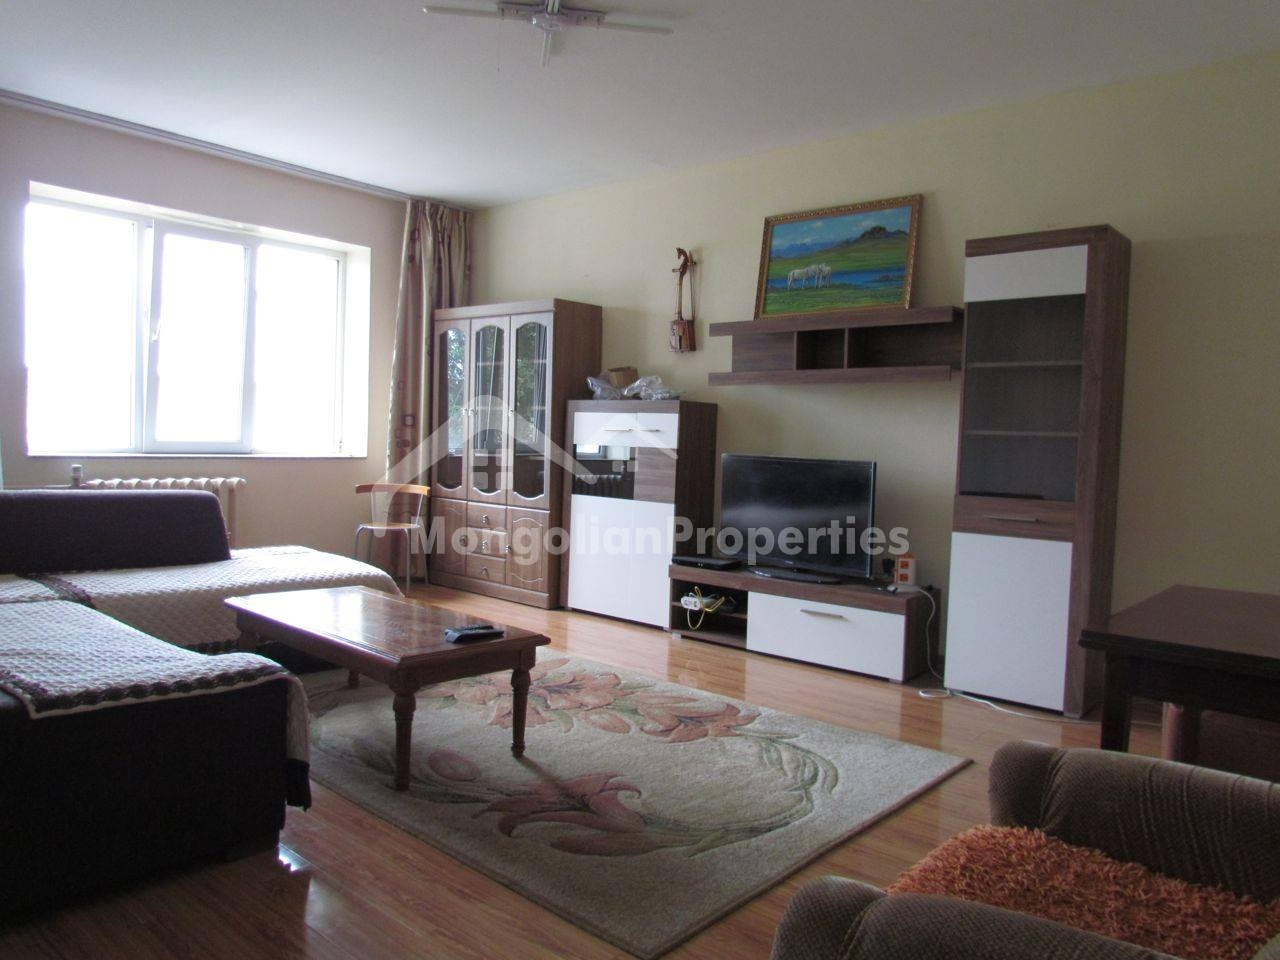 3-bedroom APARTMENT IS FOR RENT IN seoul street, downtown.